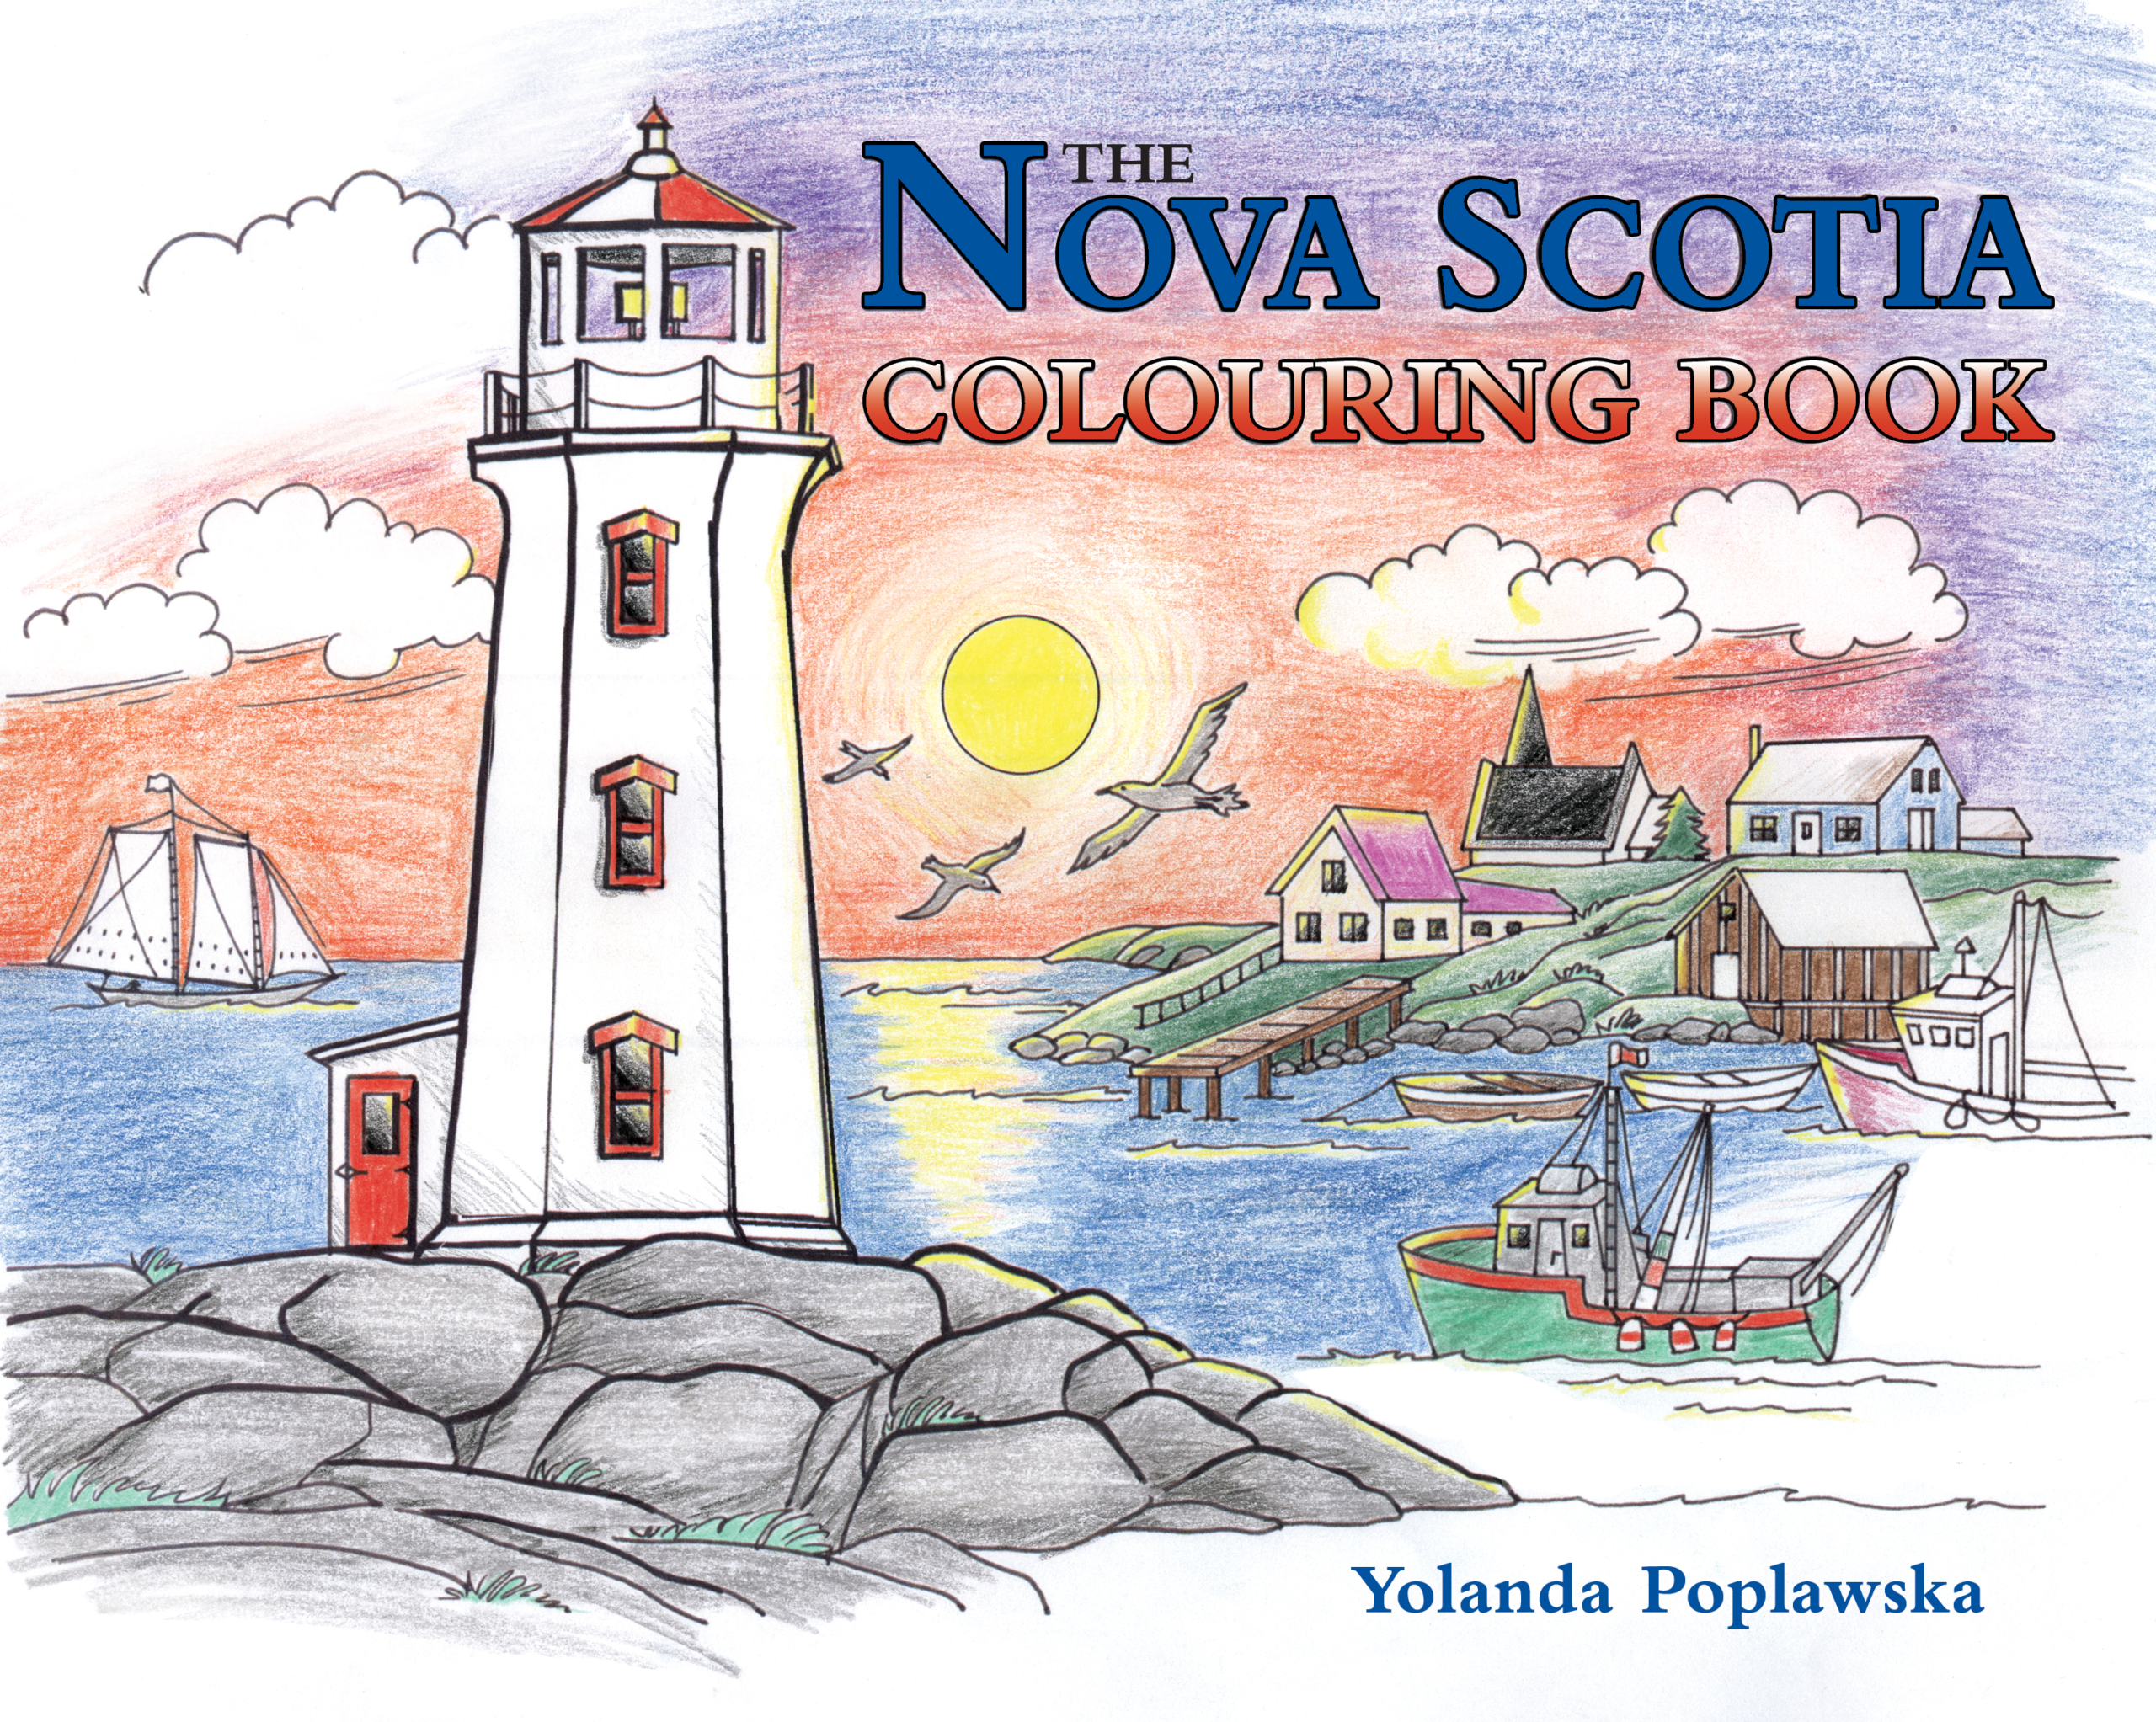 The Nova Scotia Colouring Book